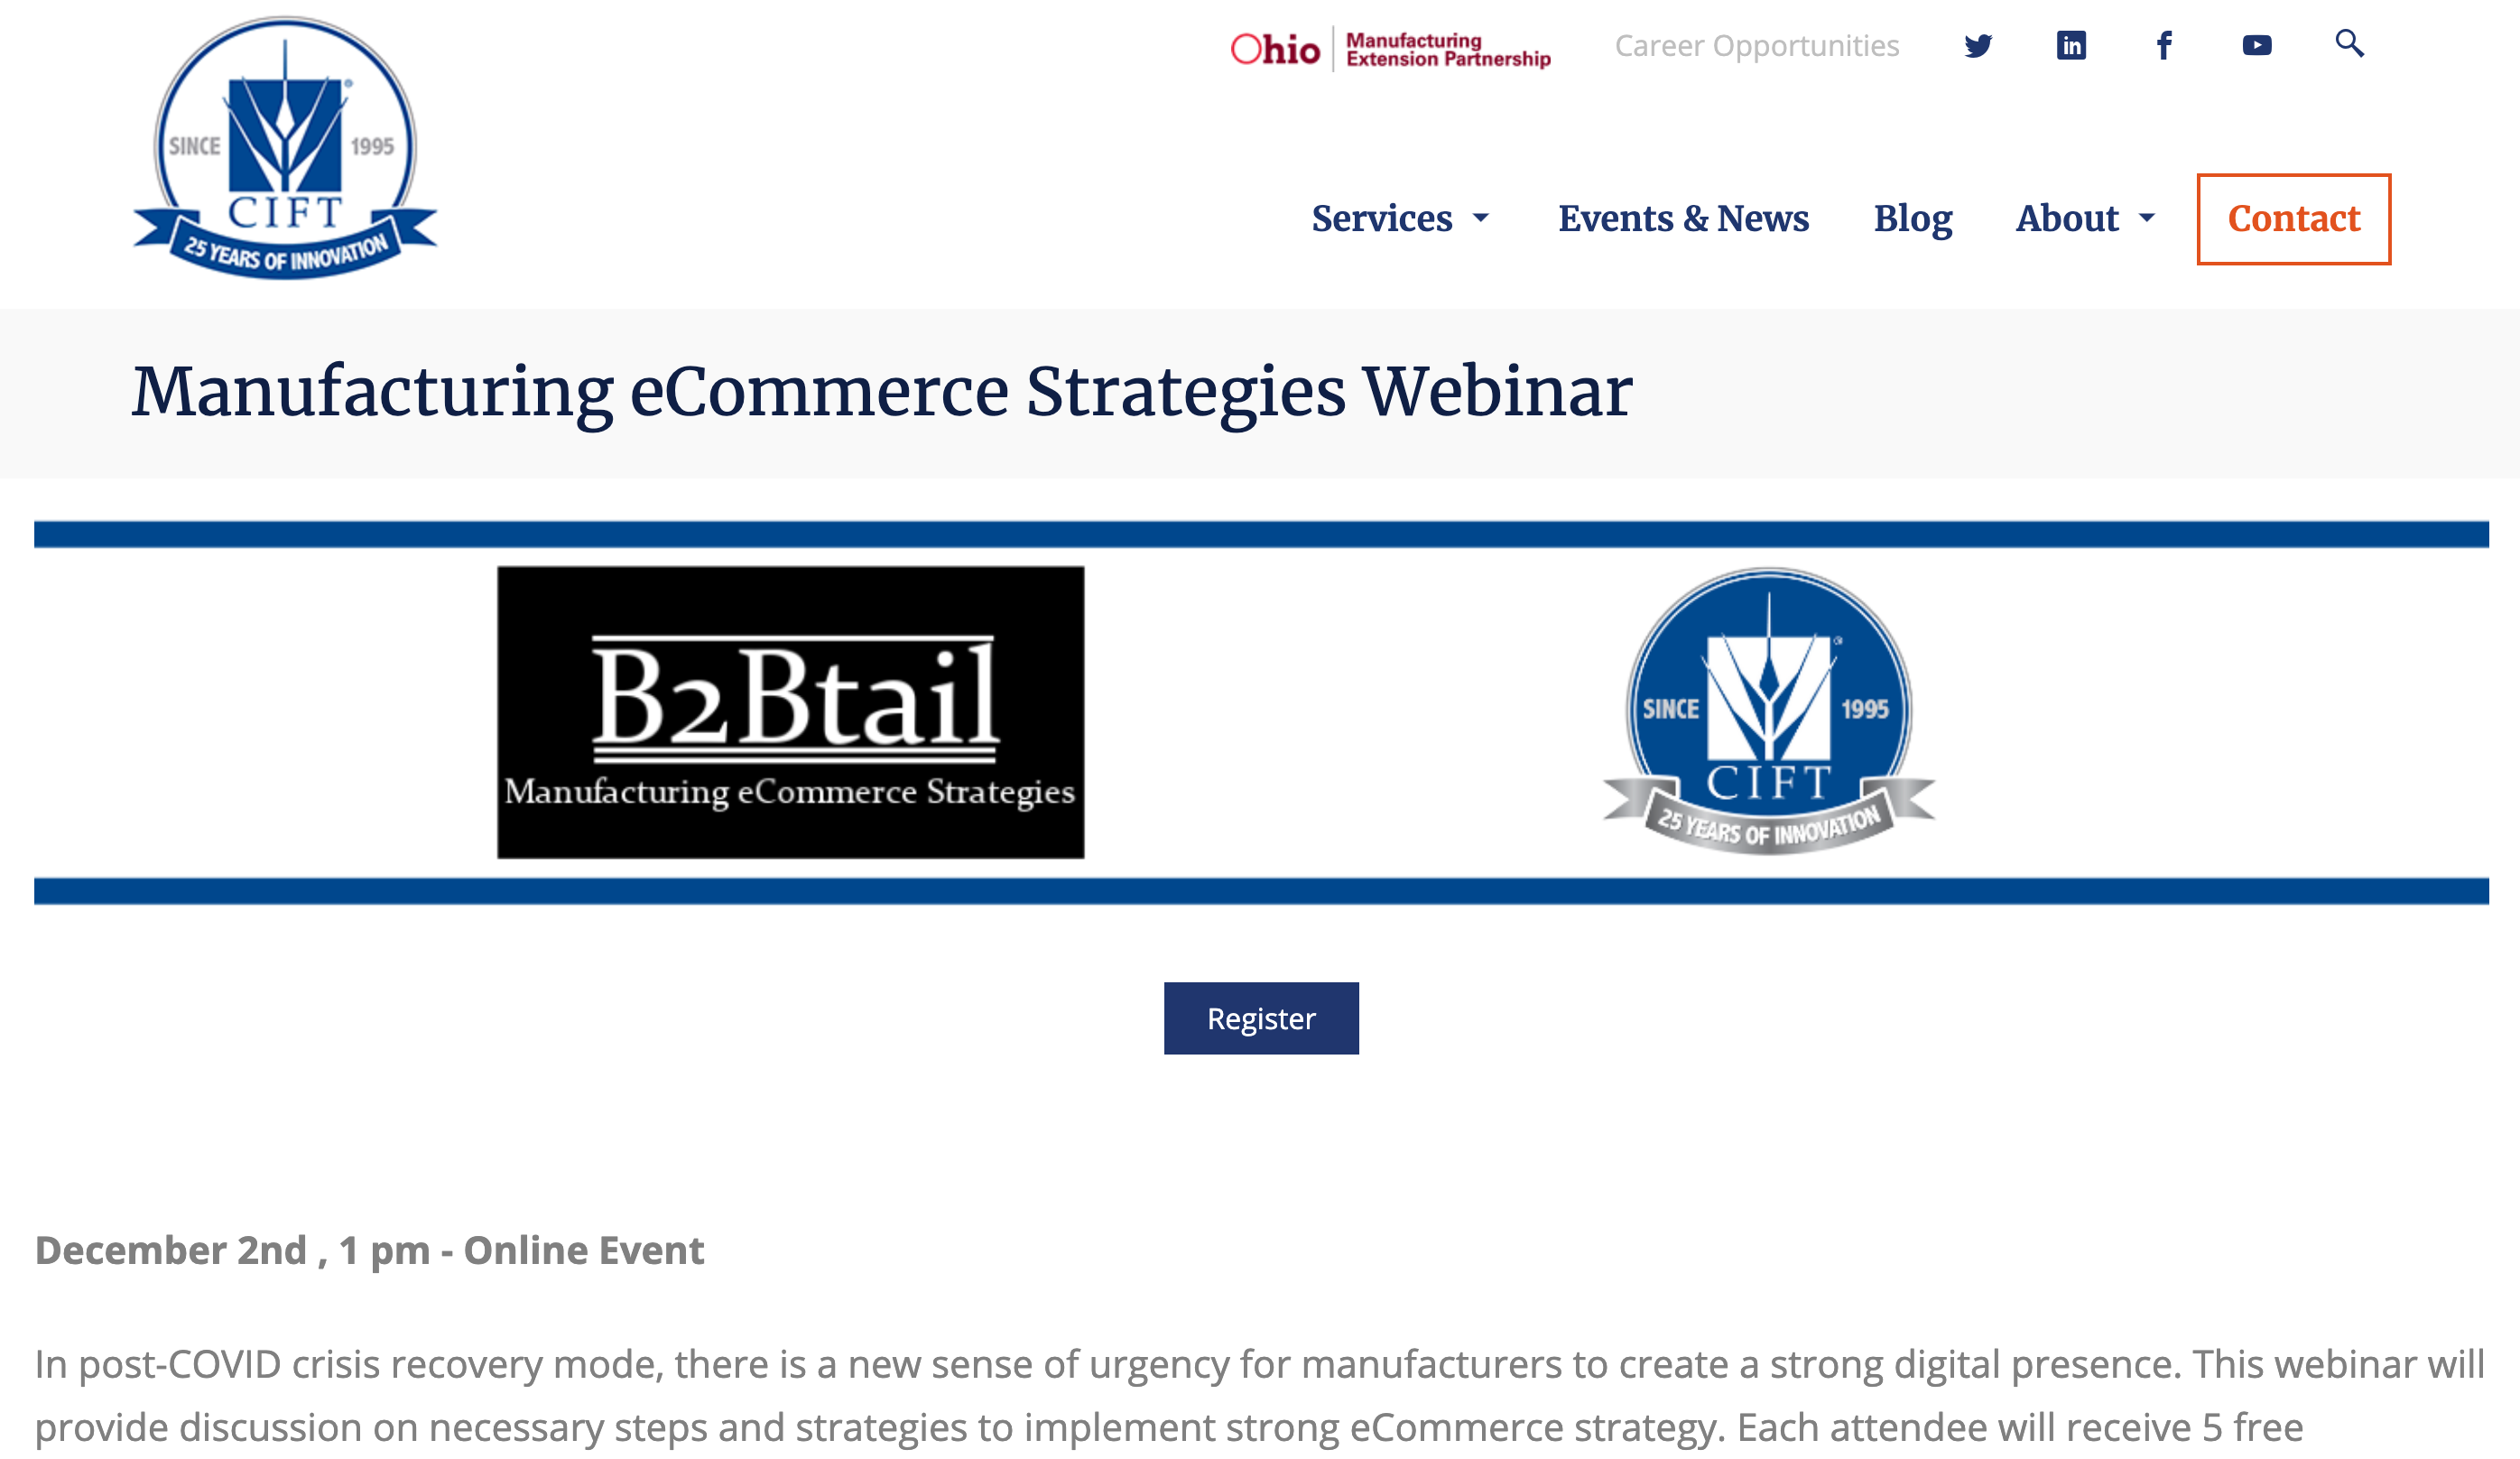 CIFT, OHIO MEP (CIFT) eCommerce Workshop Featuring Falconer Electronics